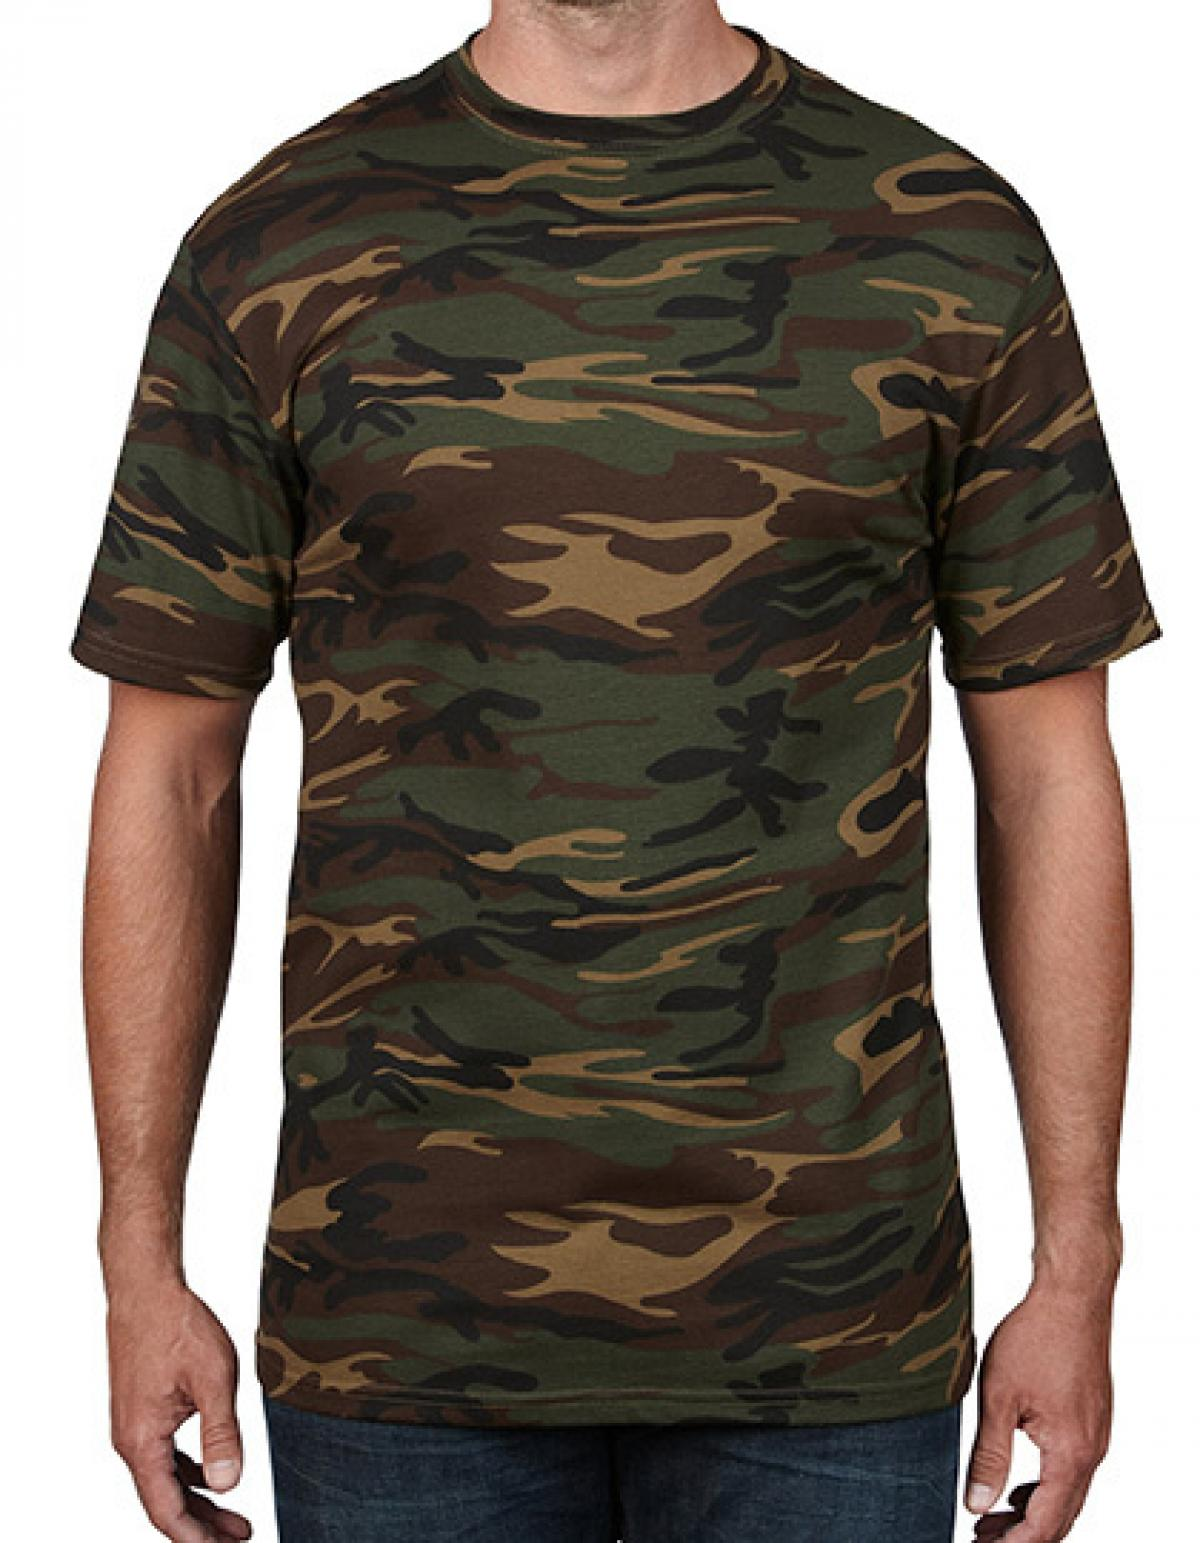 camouflage tarn herren t shirt rexlander s. Black Bedroom Furniture Sets. Home Design Ideas